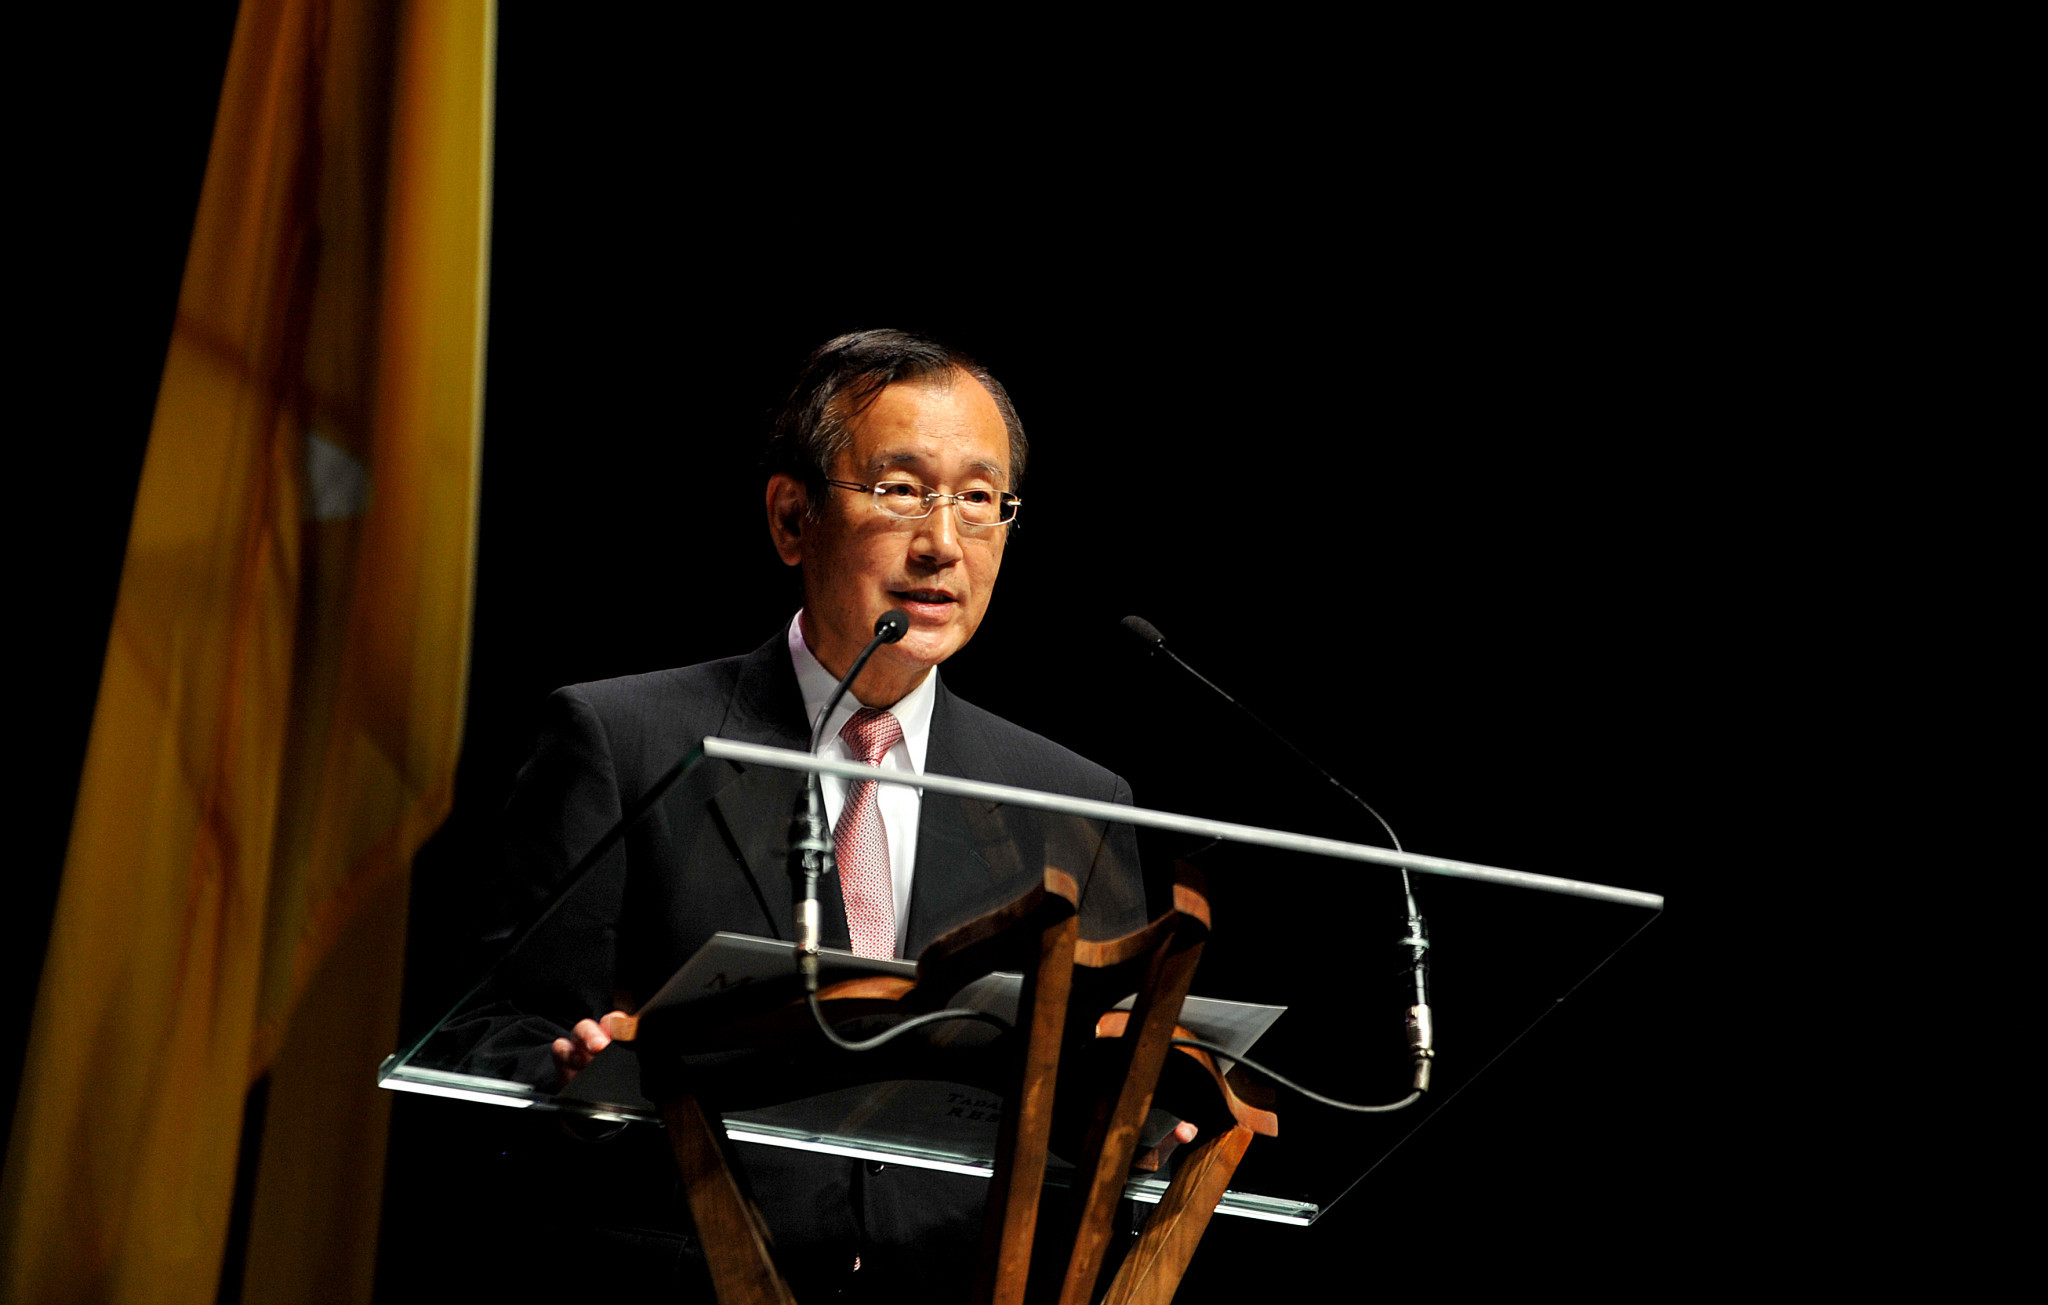 Former Hiroshima Mayor calls on Tokyo 2020 to observe moment of silence to remember 1945 victims